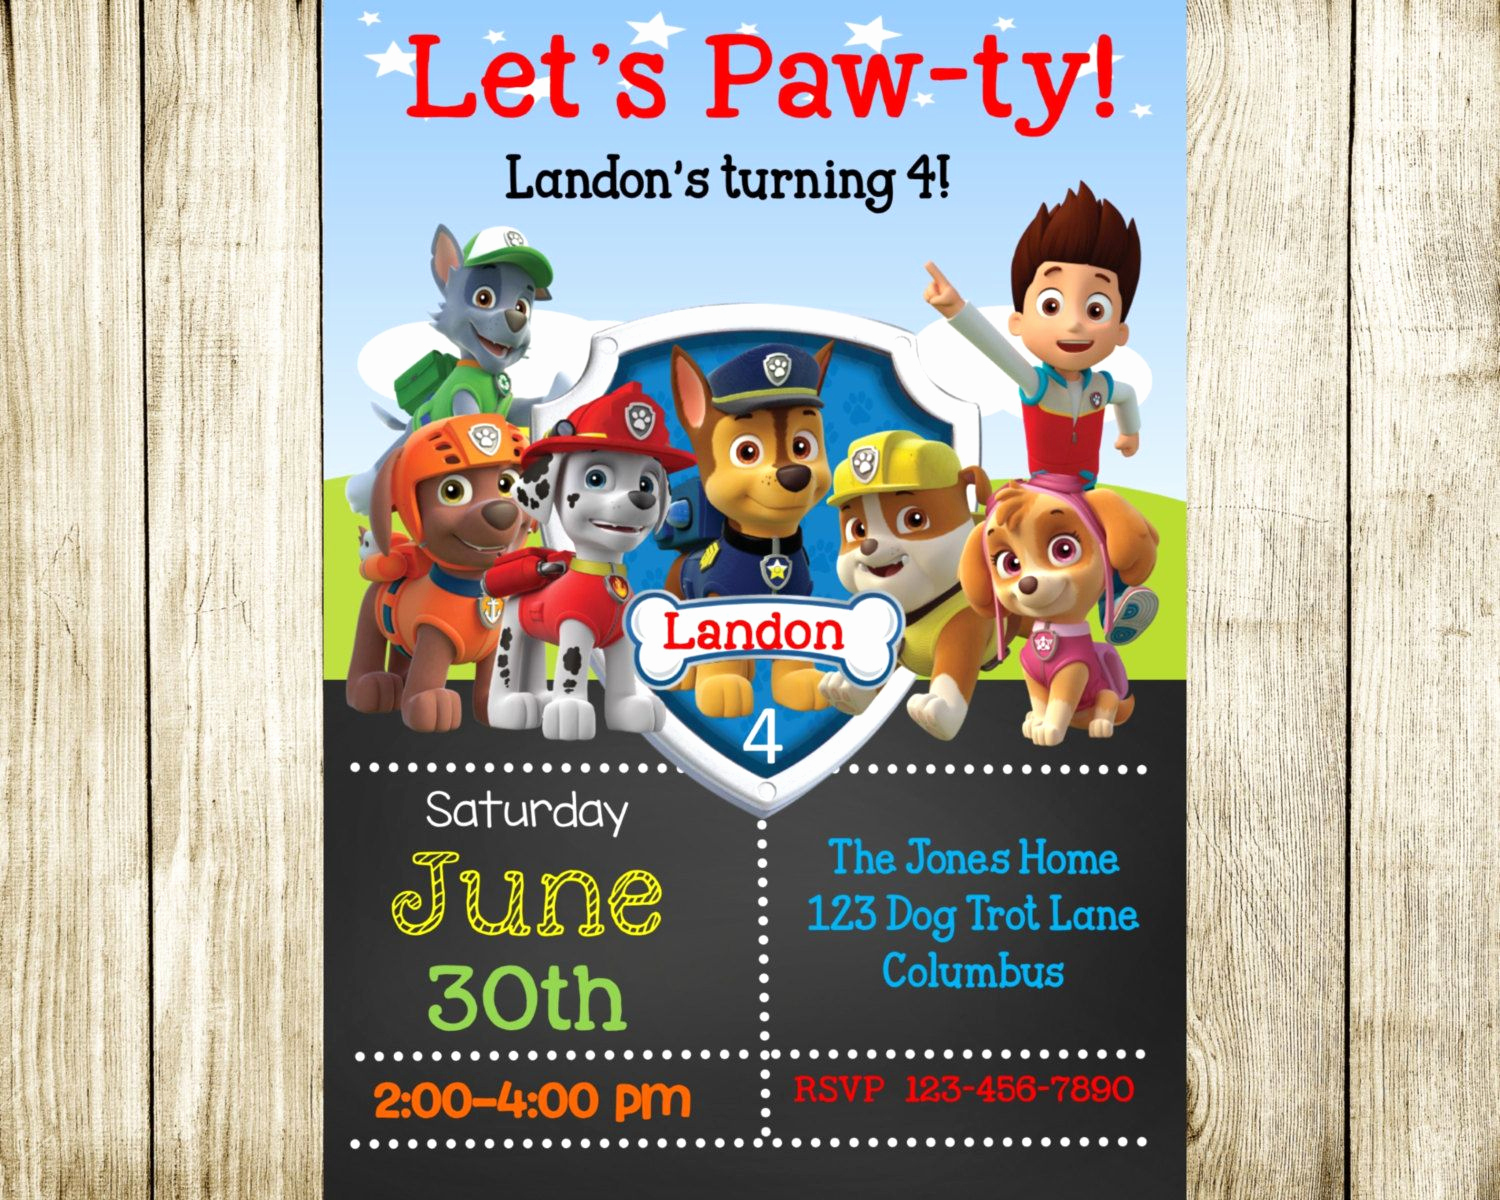 Paw Patrol Party Invitation Template Beautiful Paw Patrol Cake Template Google Search